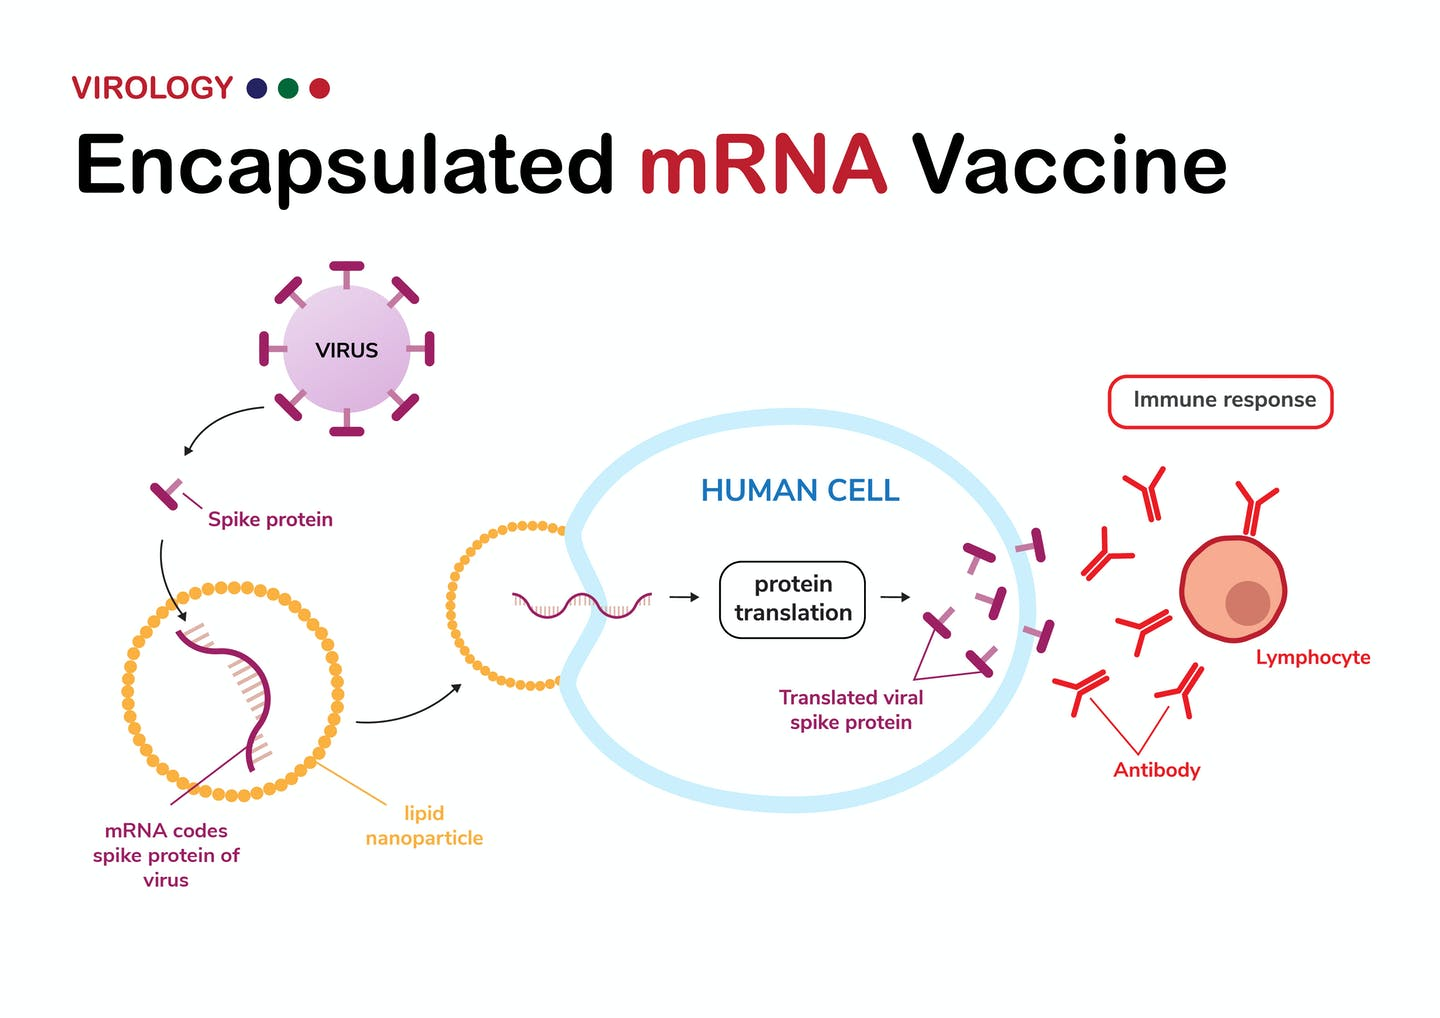 Diagram shows encapsulated mRNA that codes for spike protein of coronavirus